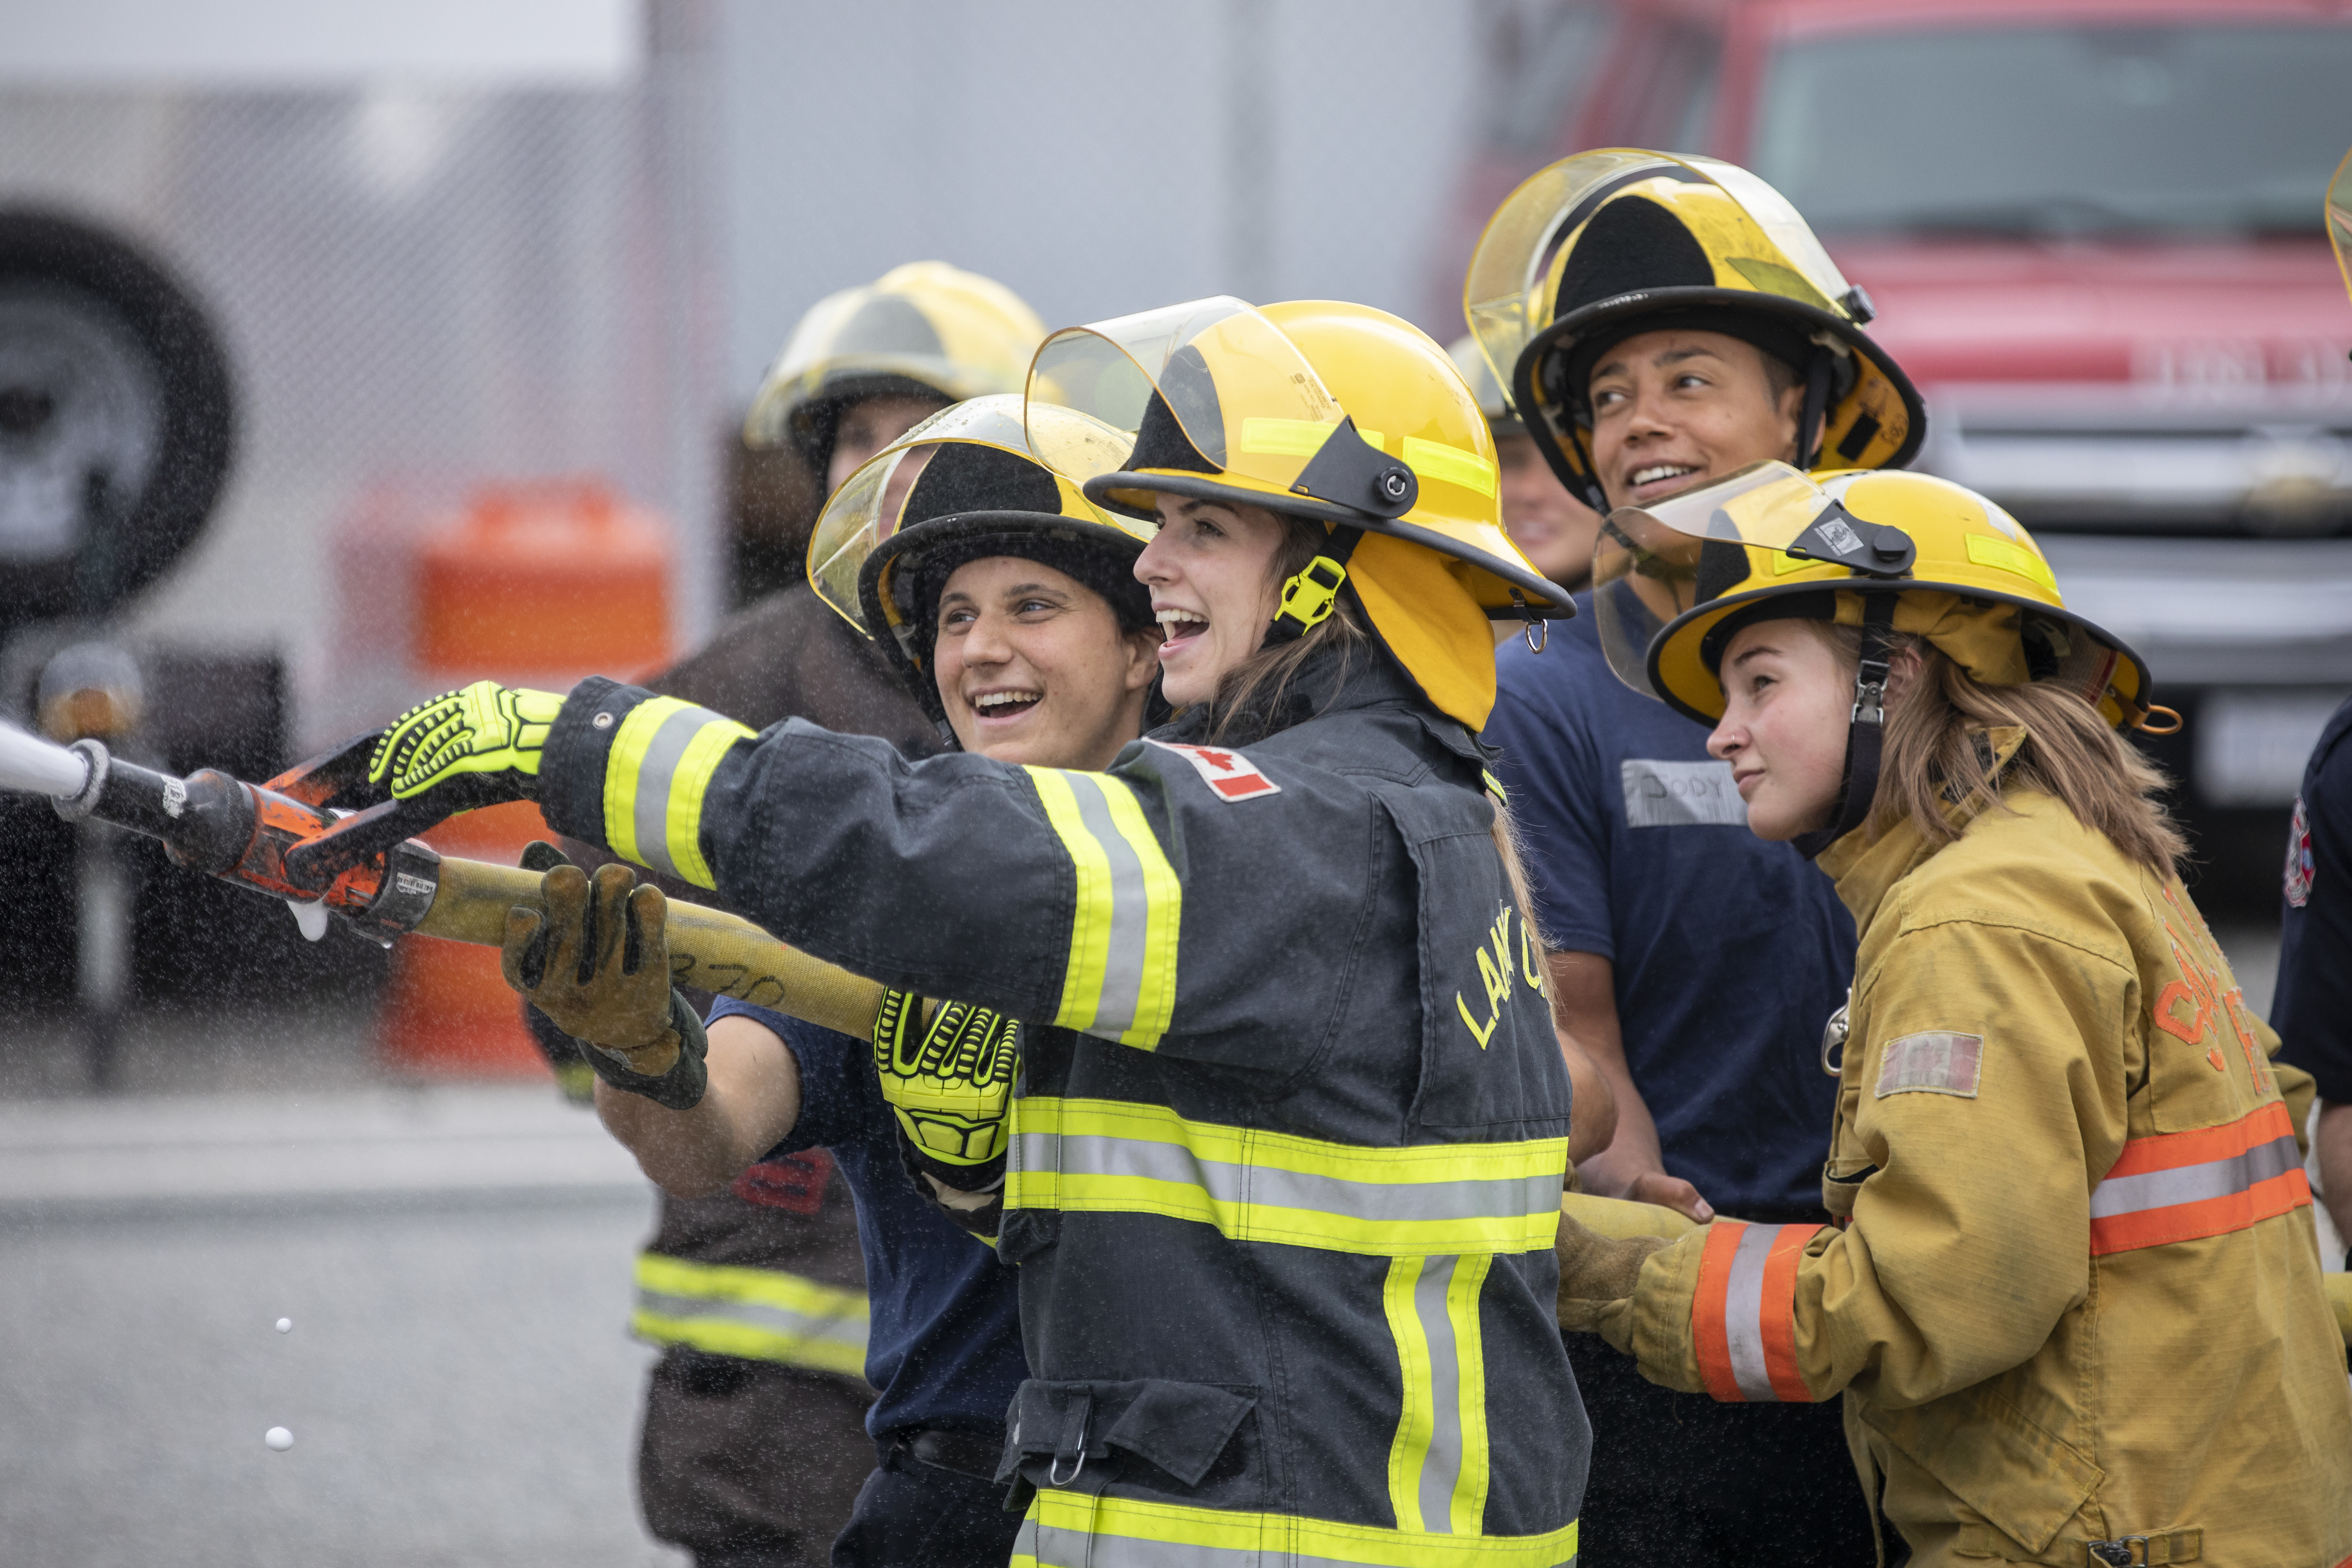 At one of the training stations, participants tried putting out a fire in a building at the training centre. (Ben Nelms/CBC)